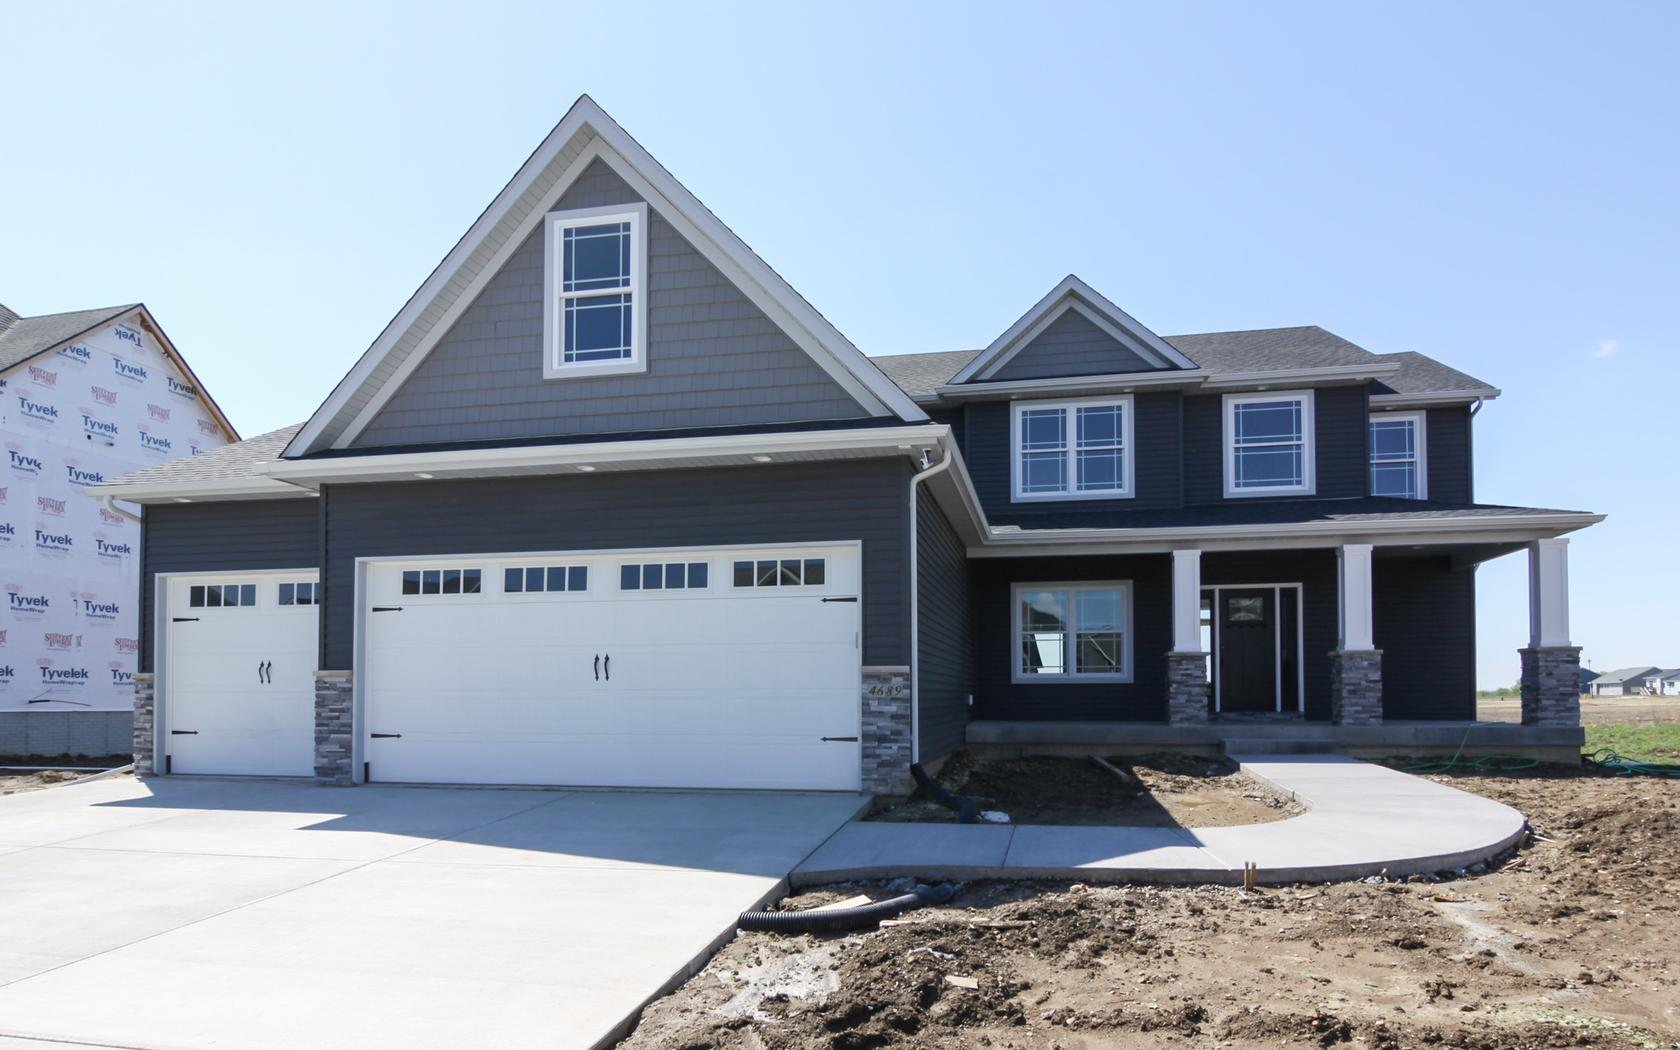 4689 57 Avenue, Bettendorf, IA <br /> <br /> Custom Built Home from Premier Custom Homes